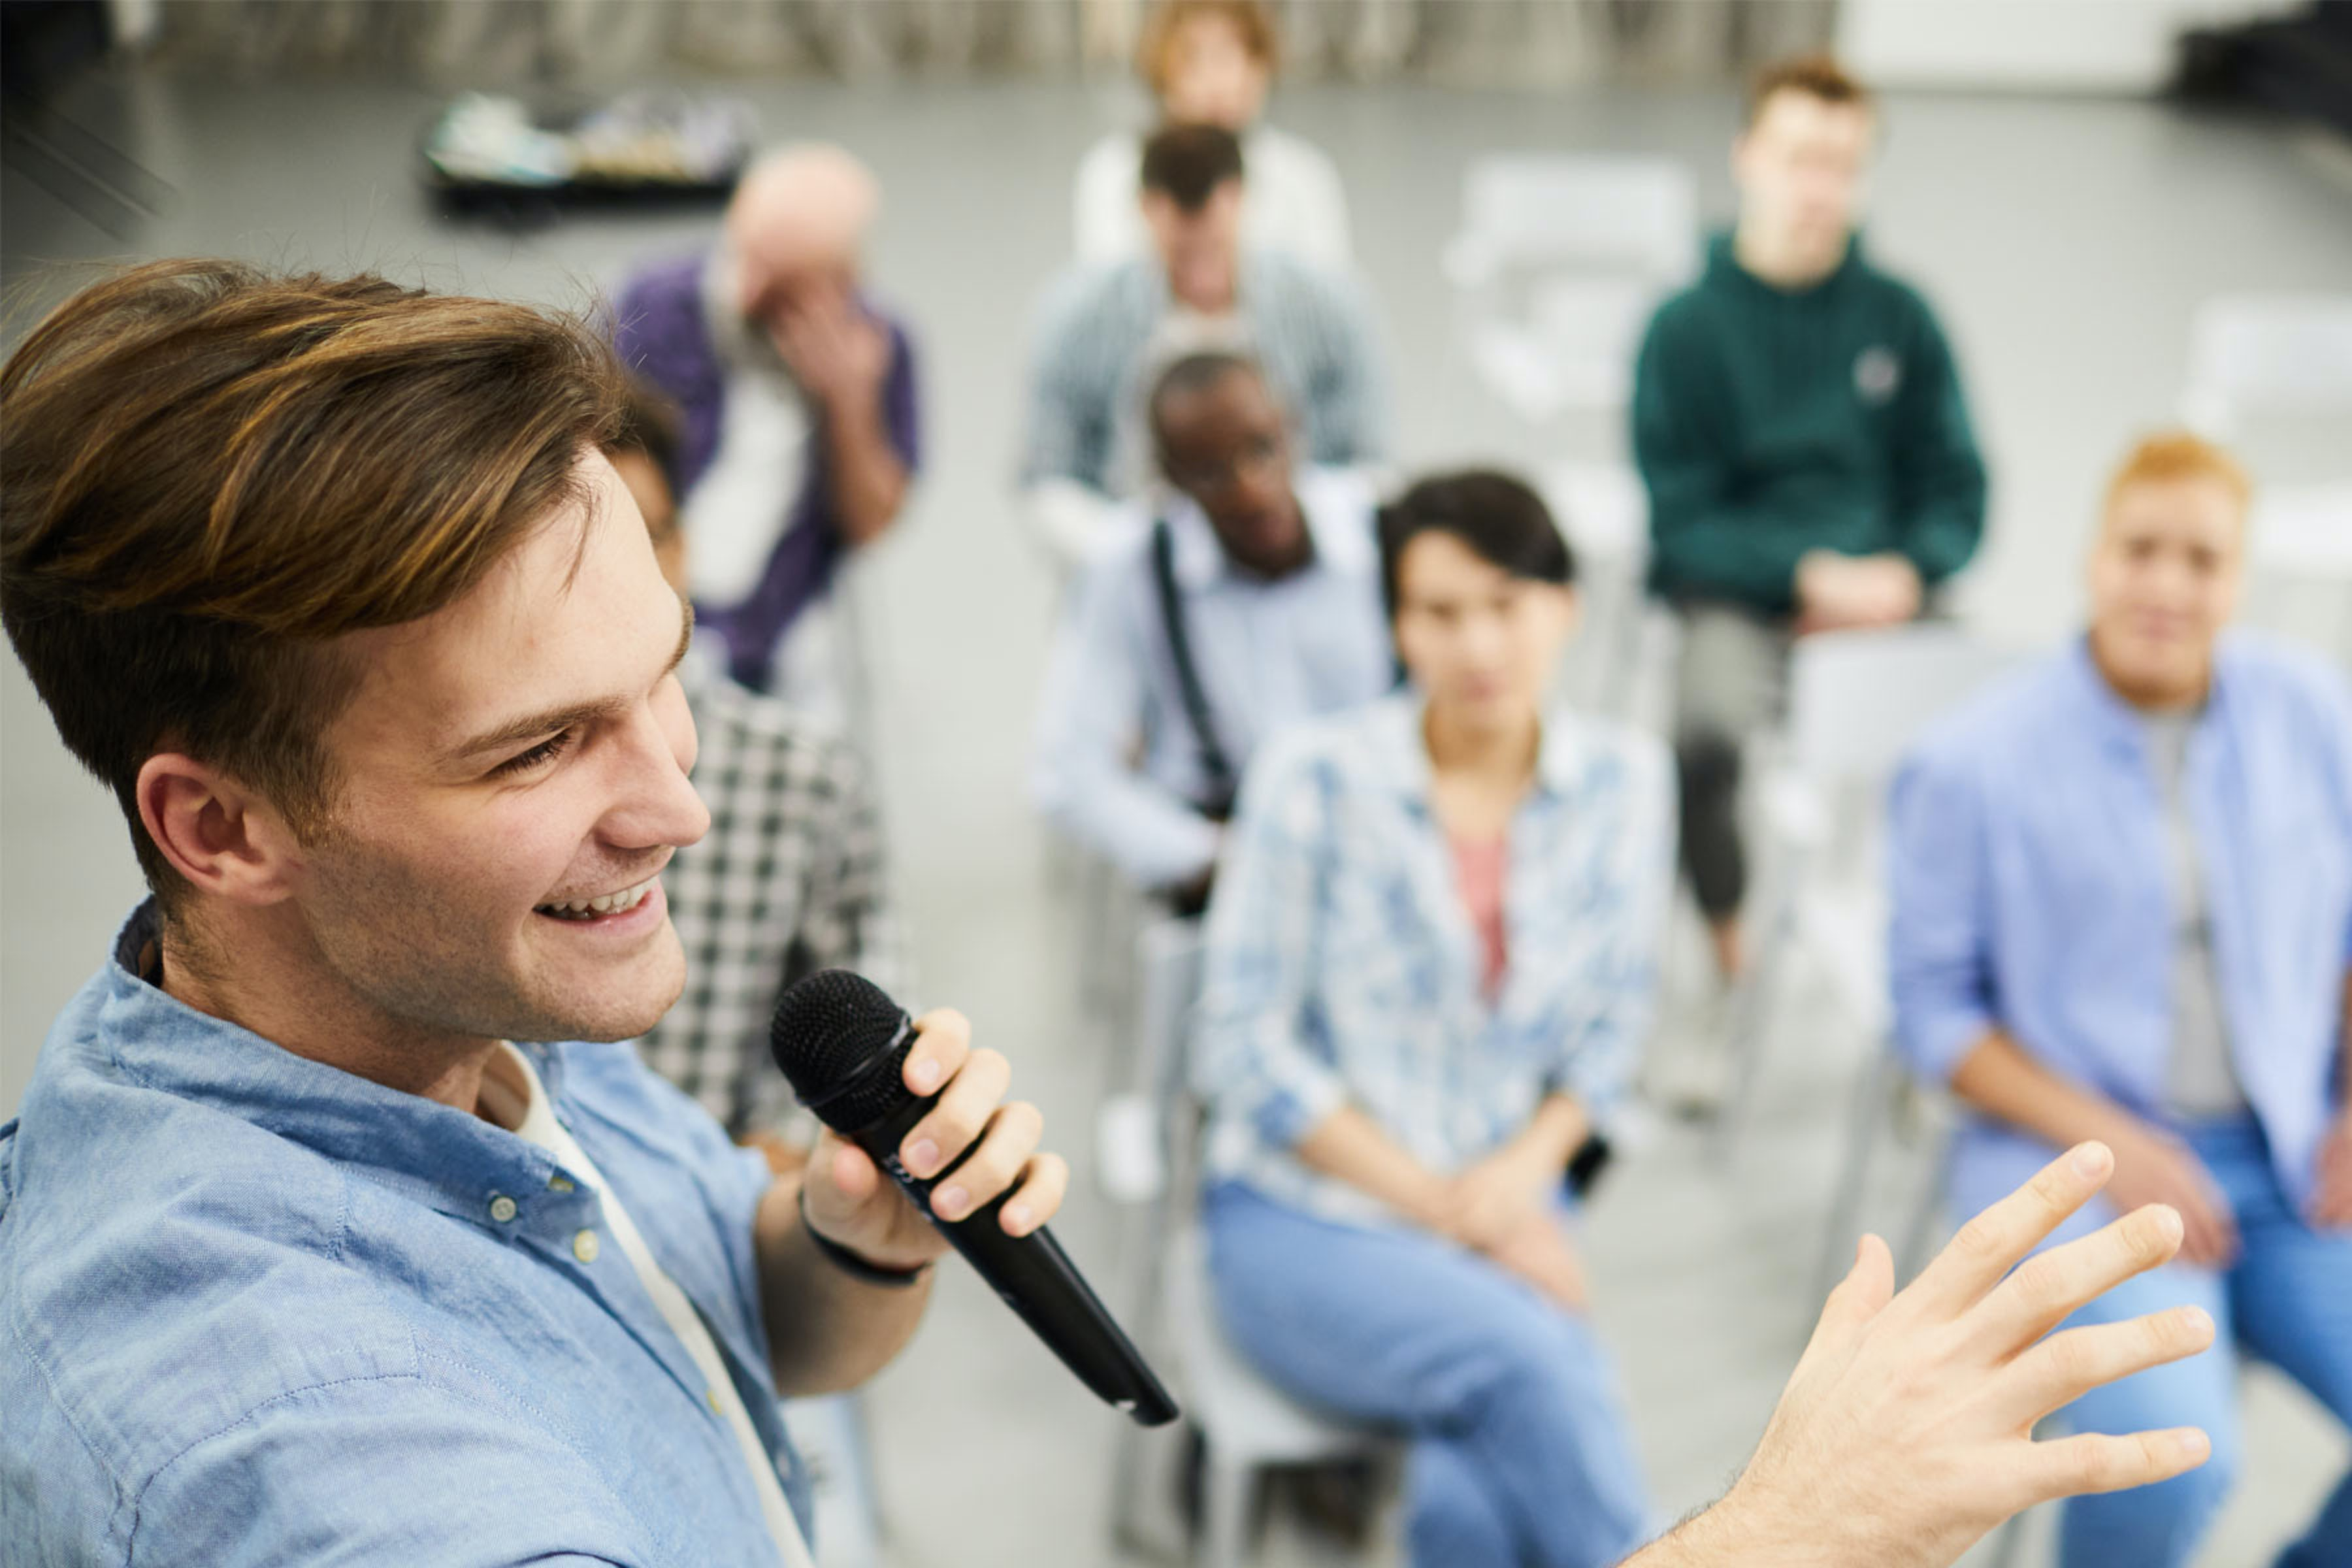 a man with a microphone leads a presentation